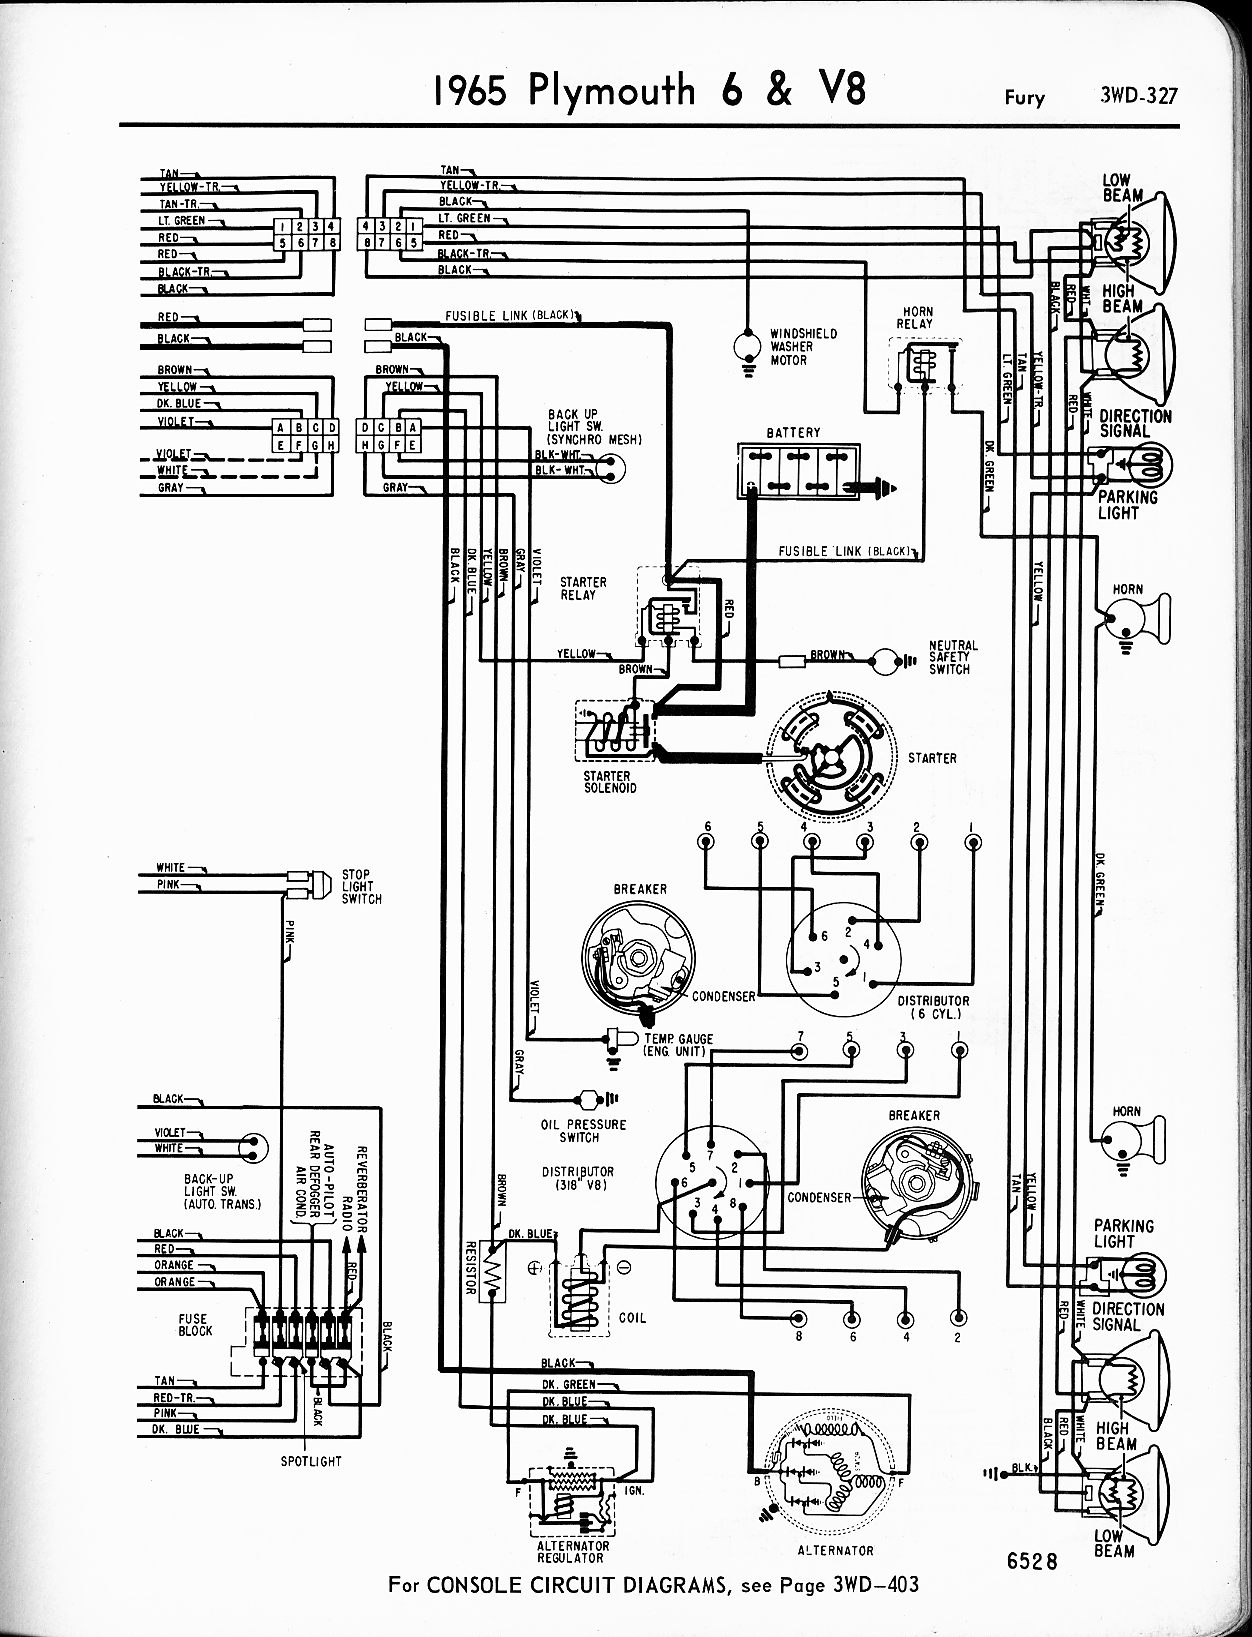 1978 Plymouth Volare Wiring Diagram Free Picture 1977 Chevrolet Pickup Get Image About 1980 Diagrams Sitewiring Dodge